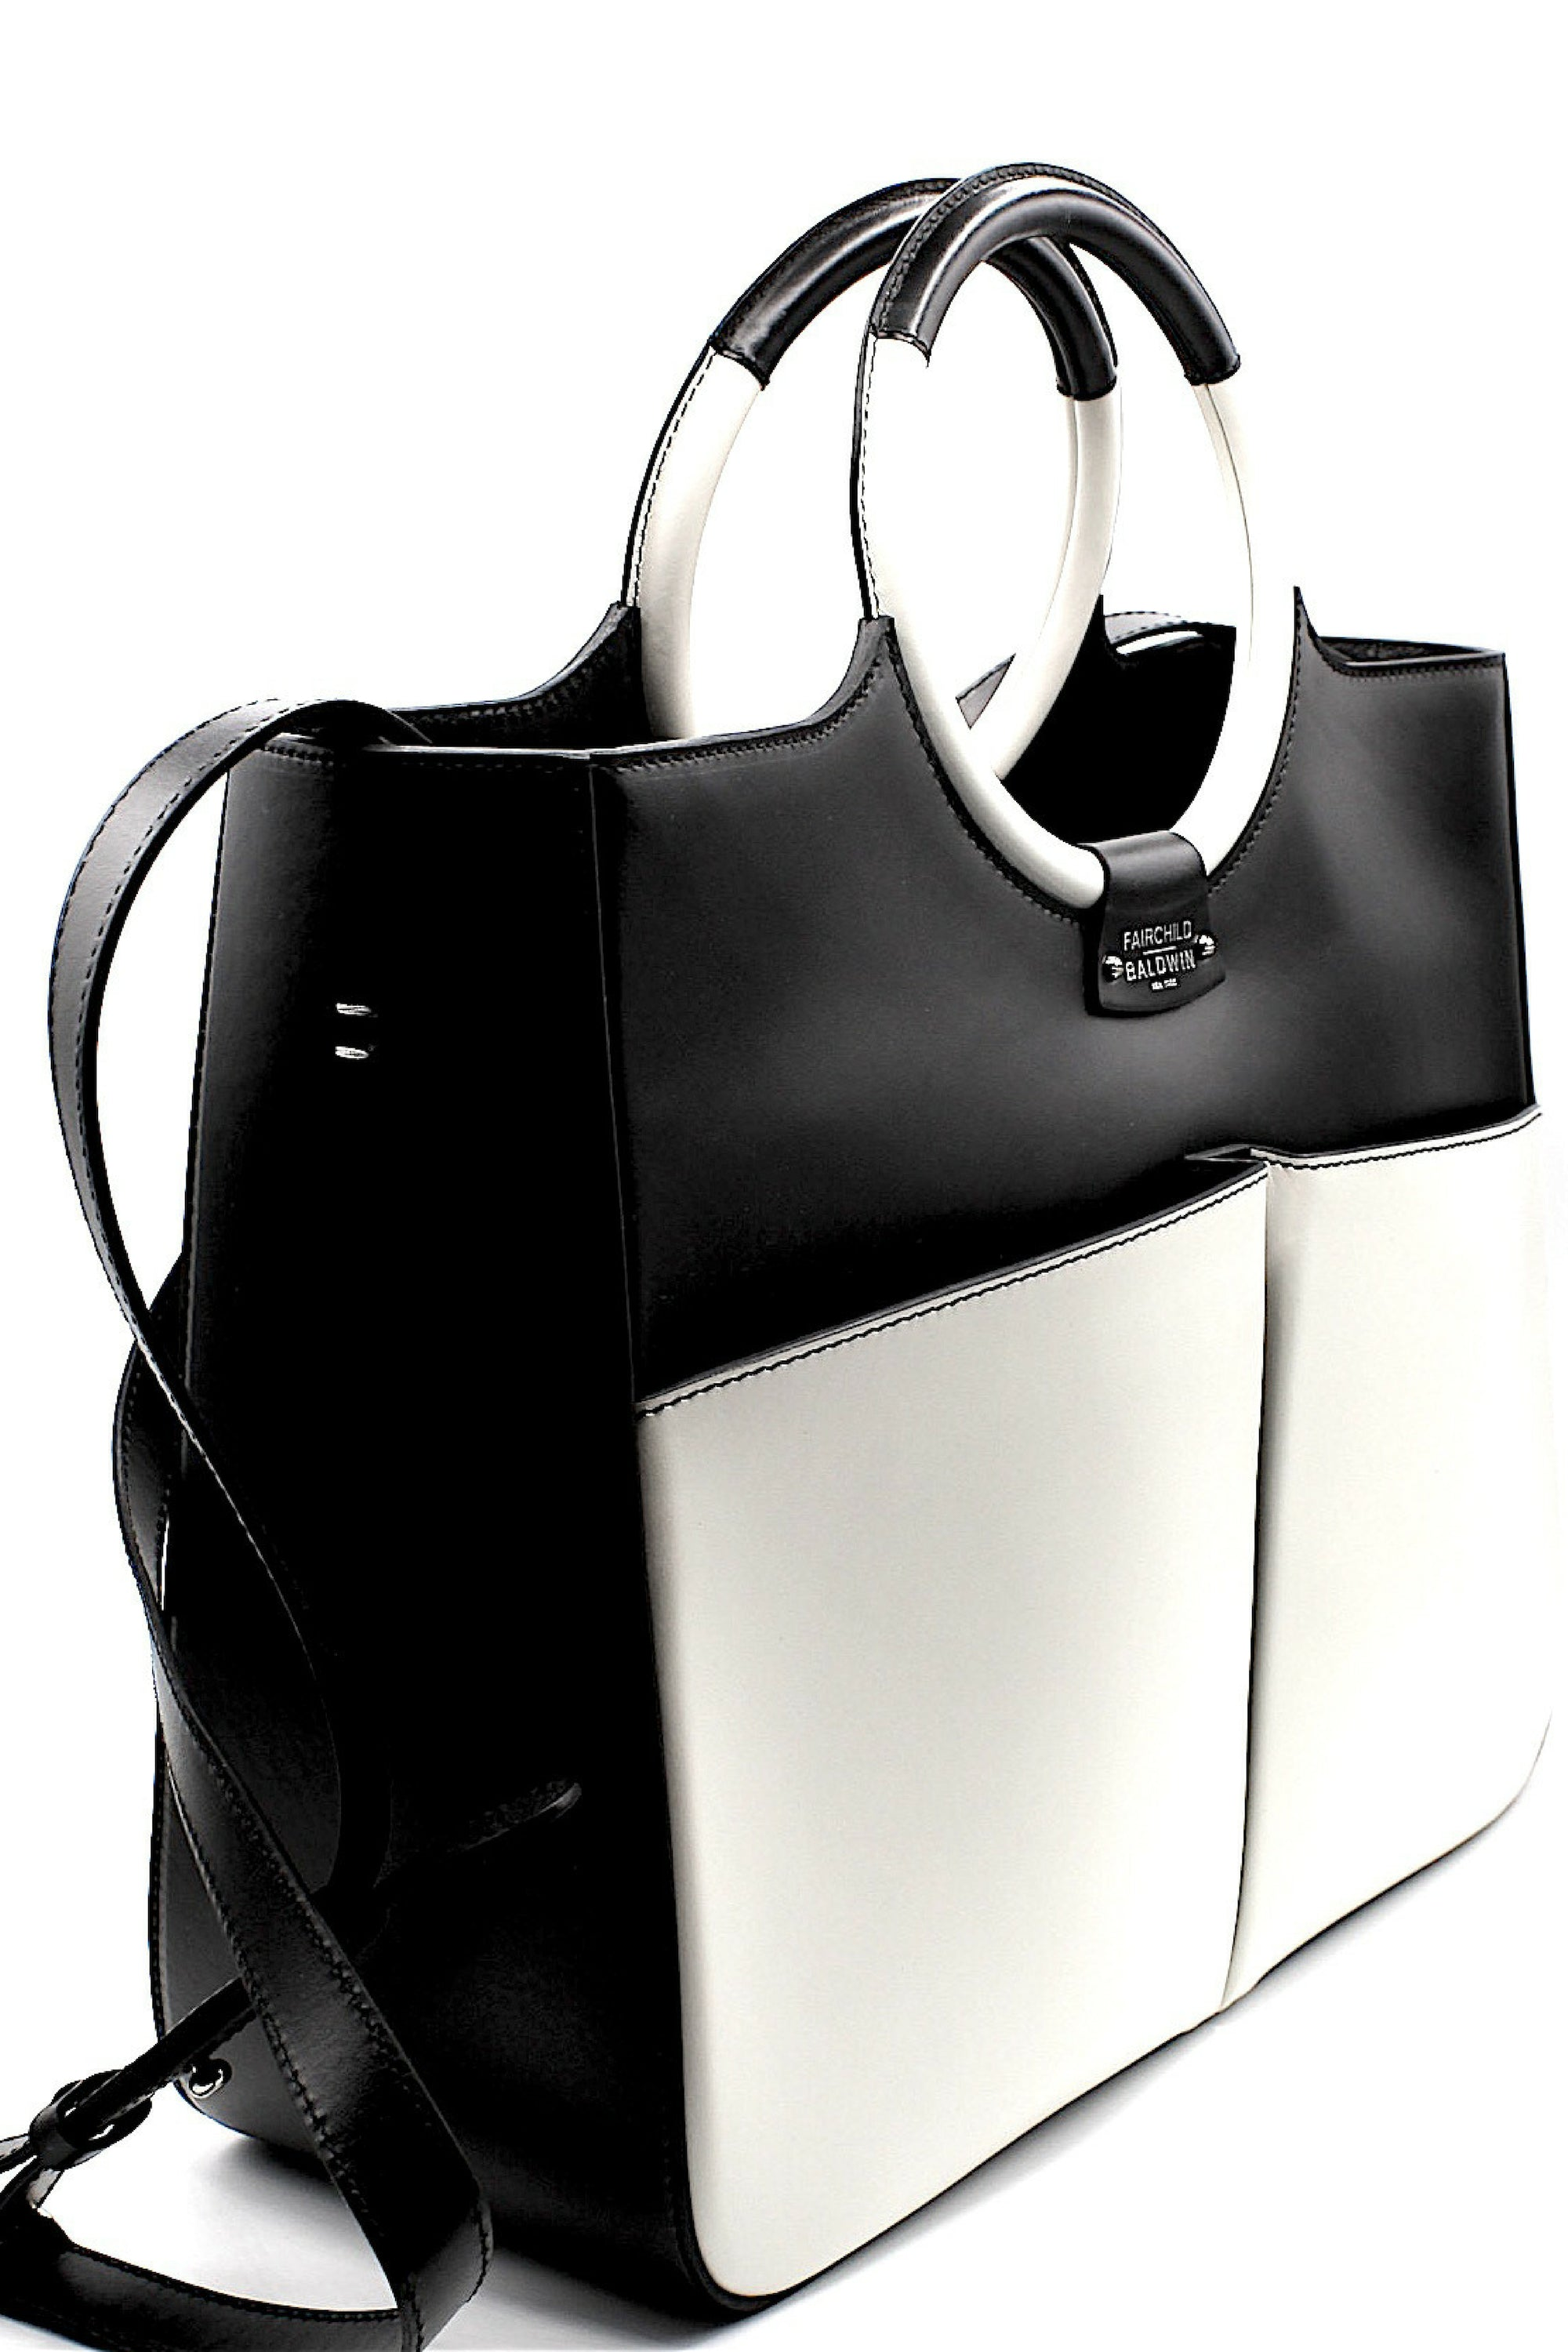 Black & White - Fairchild Baldwin - Handmade in Italy